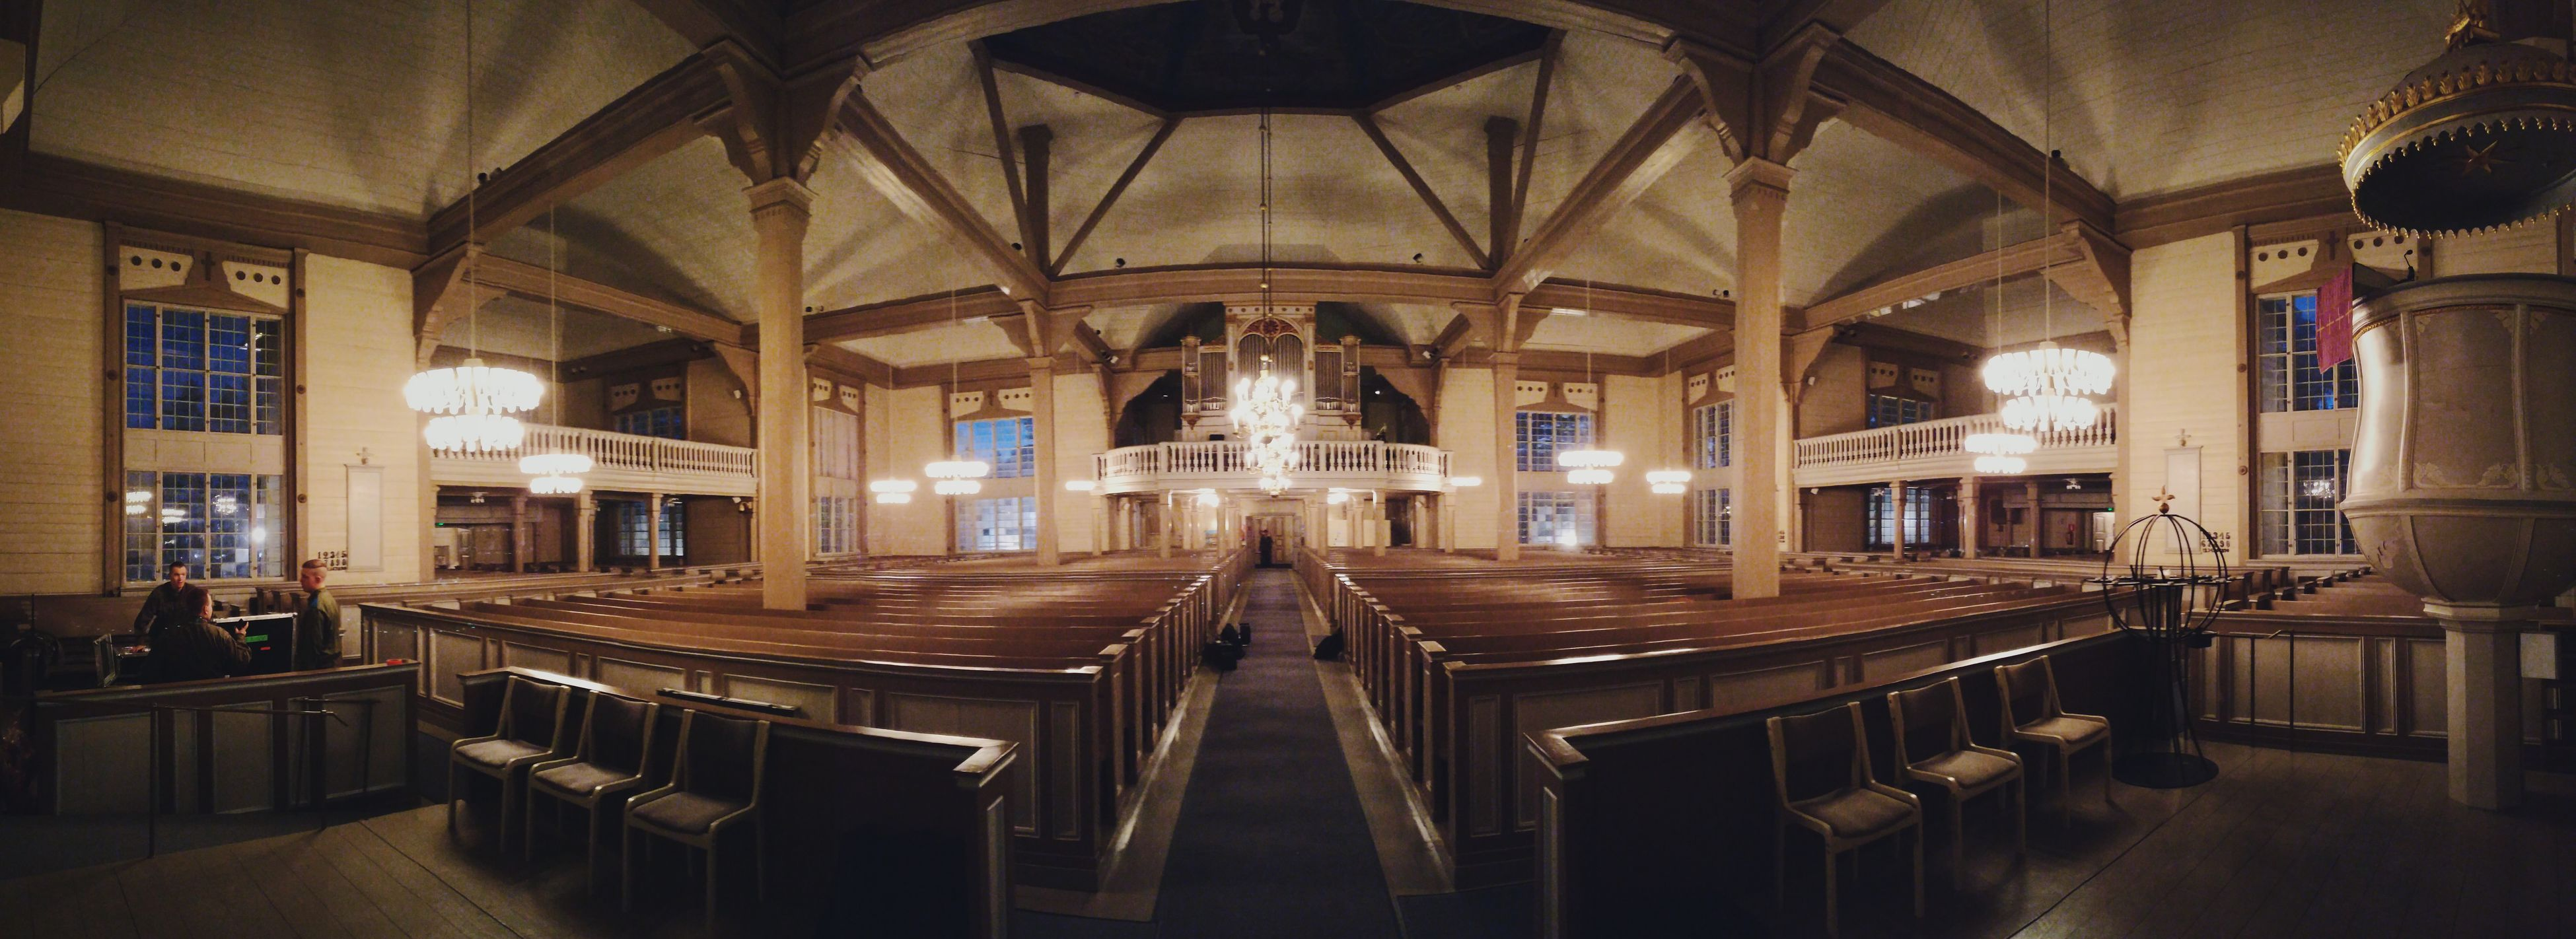 religion, place of worship, spirituality, indoors, architecture, city, pew, no people, day